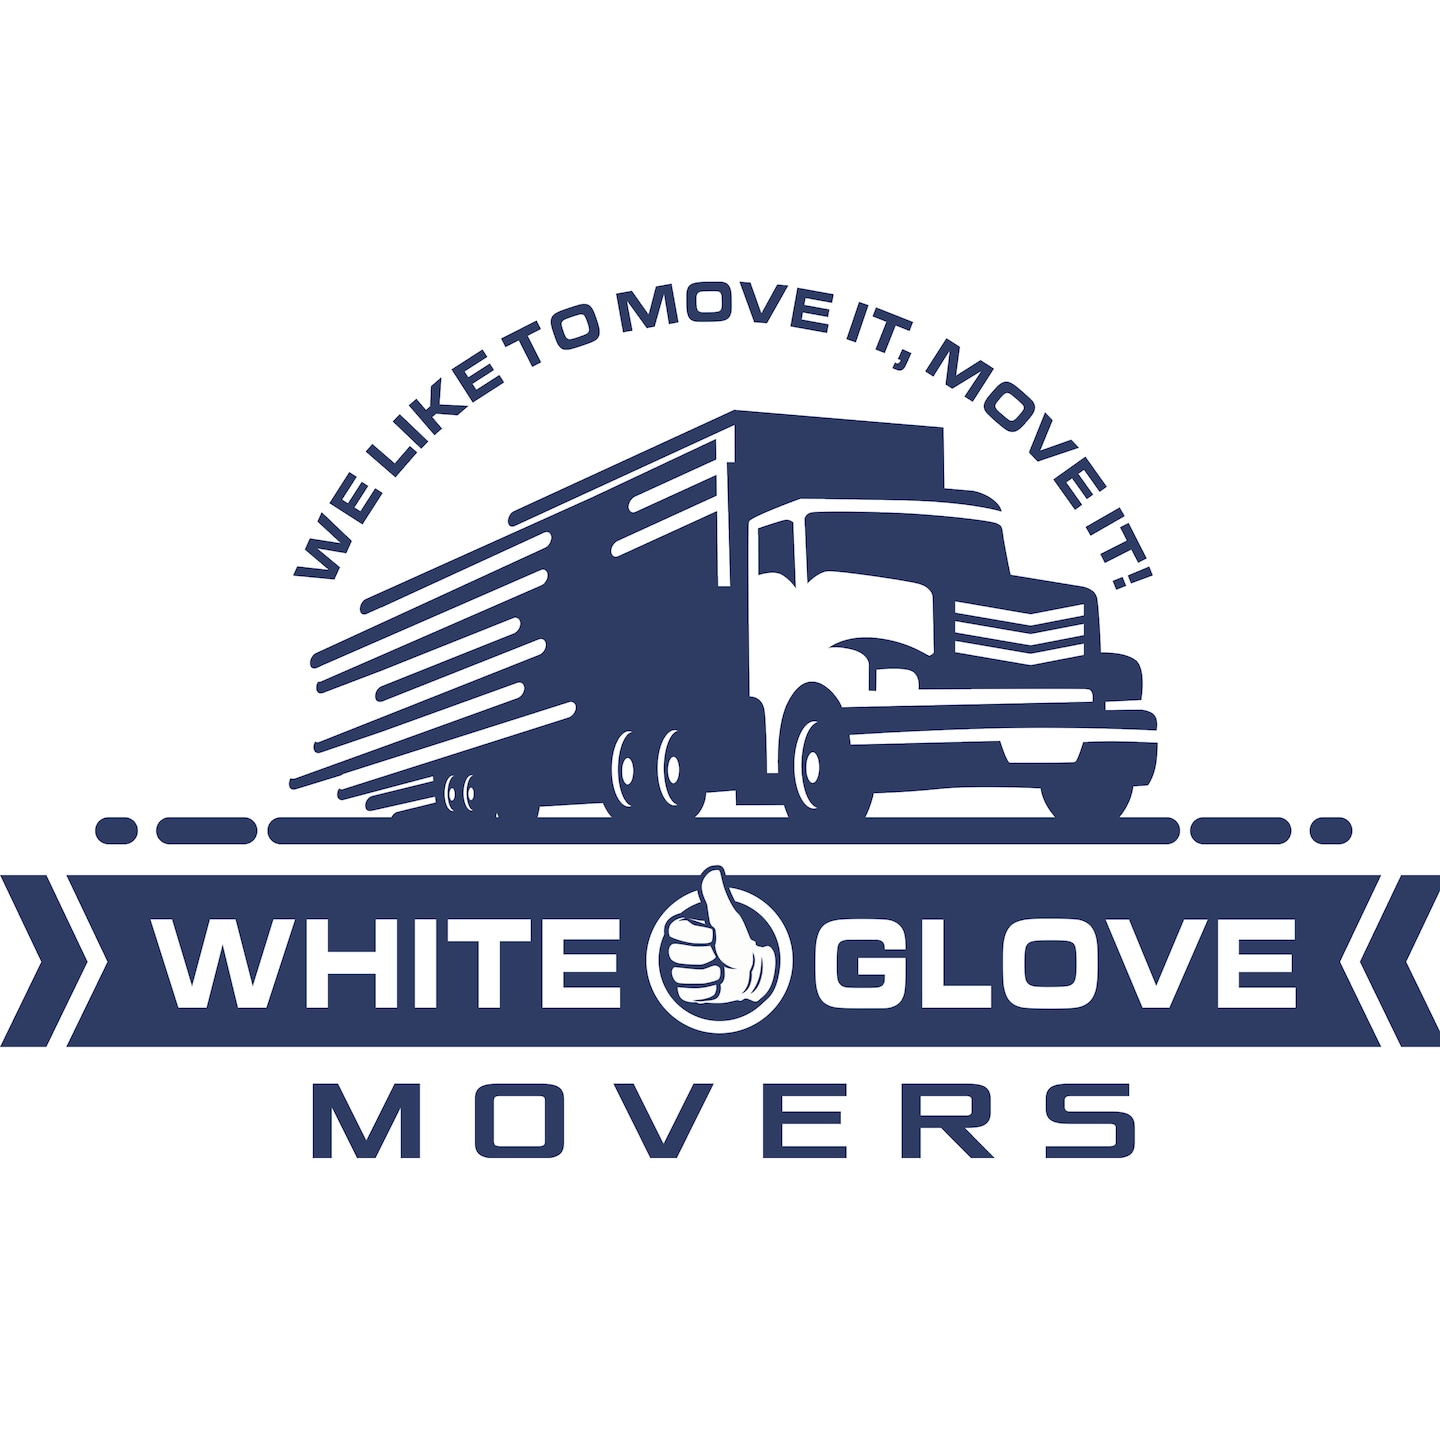 The White Glove Movers